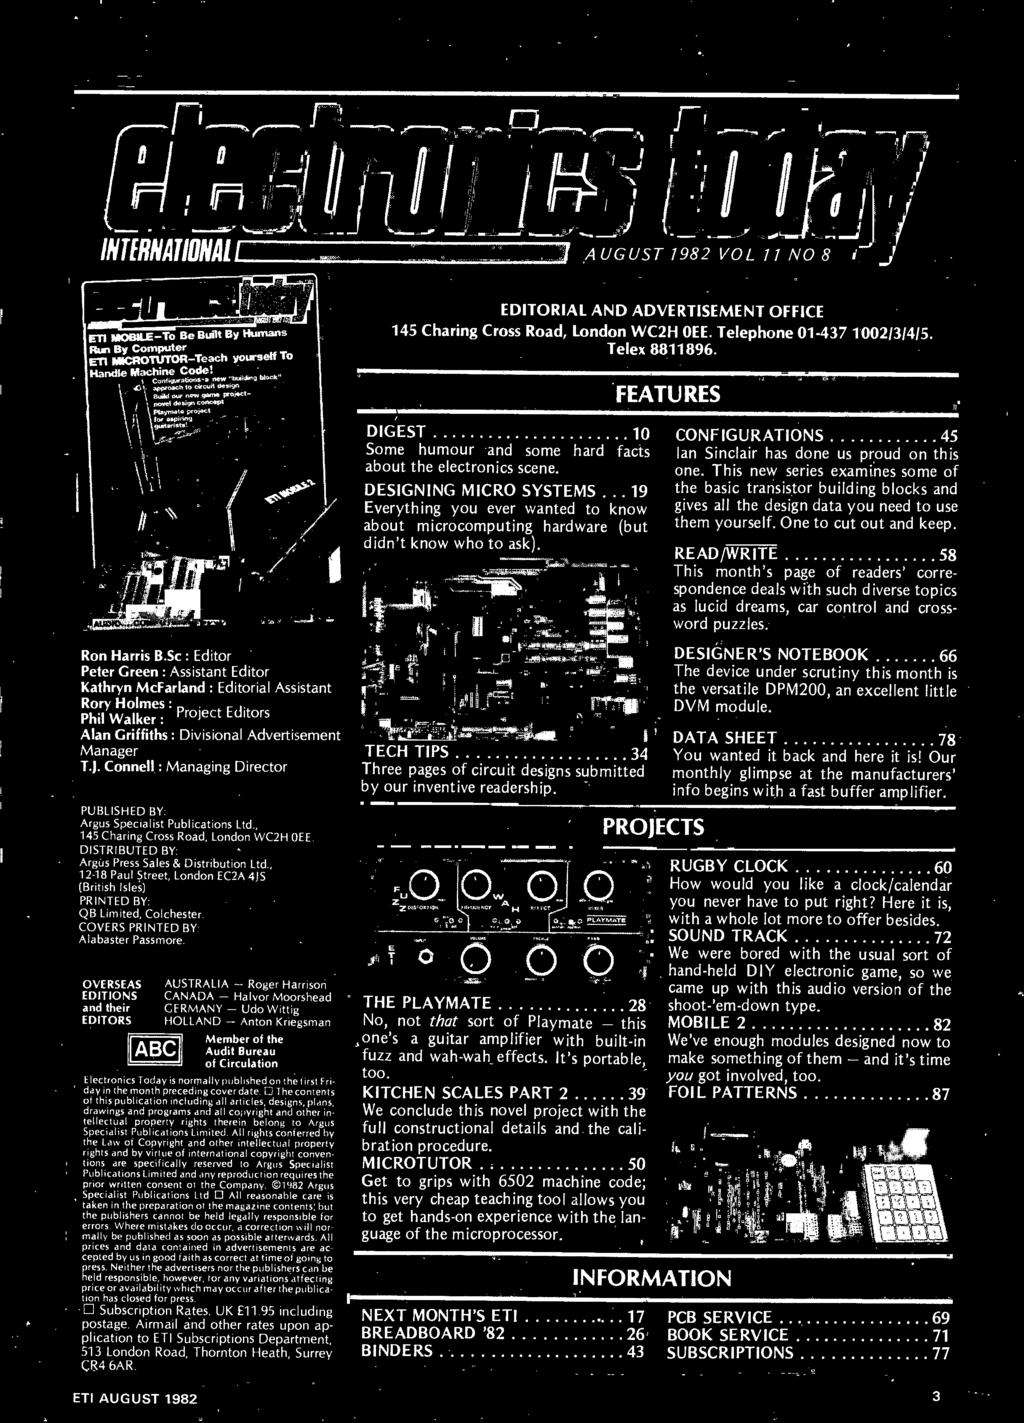 Handle Machine Code For Aspiring Guitarists Configurations A New Usb Mouse Circuit Diagram Free Electronic Circuits 8085 Projects Covers Printed By Alabaster Passmore